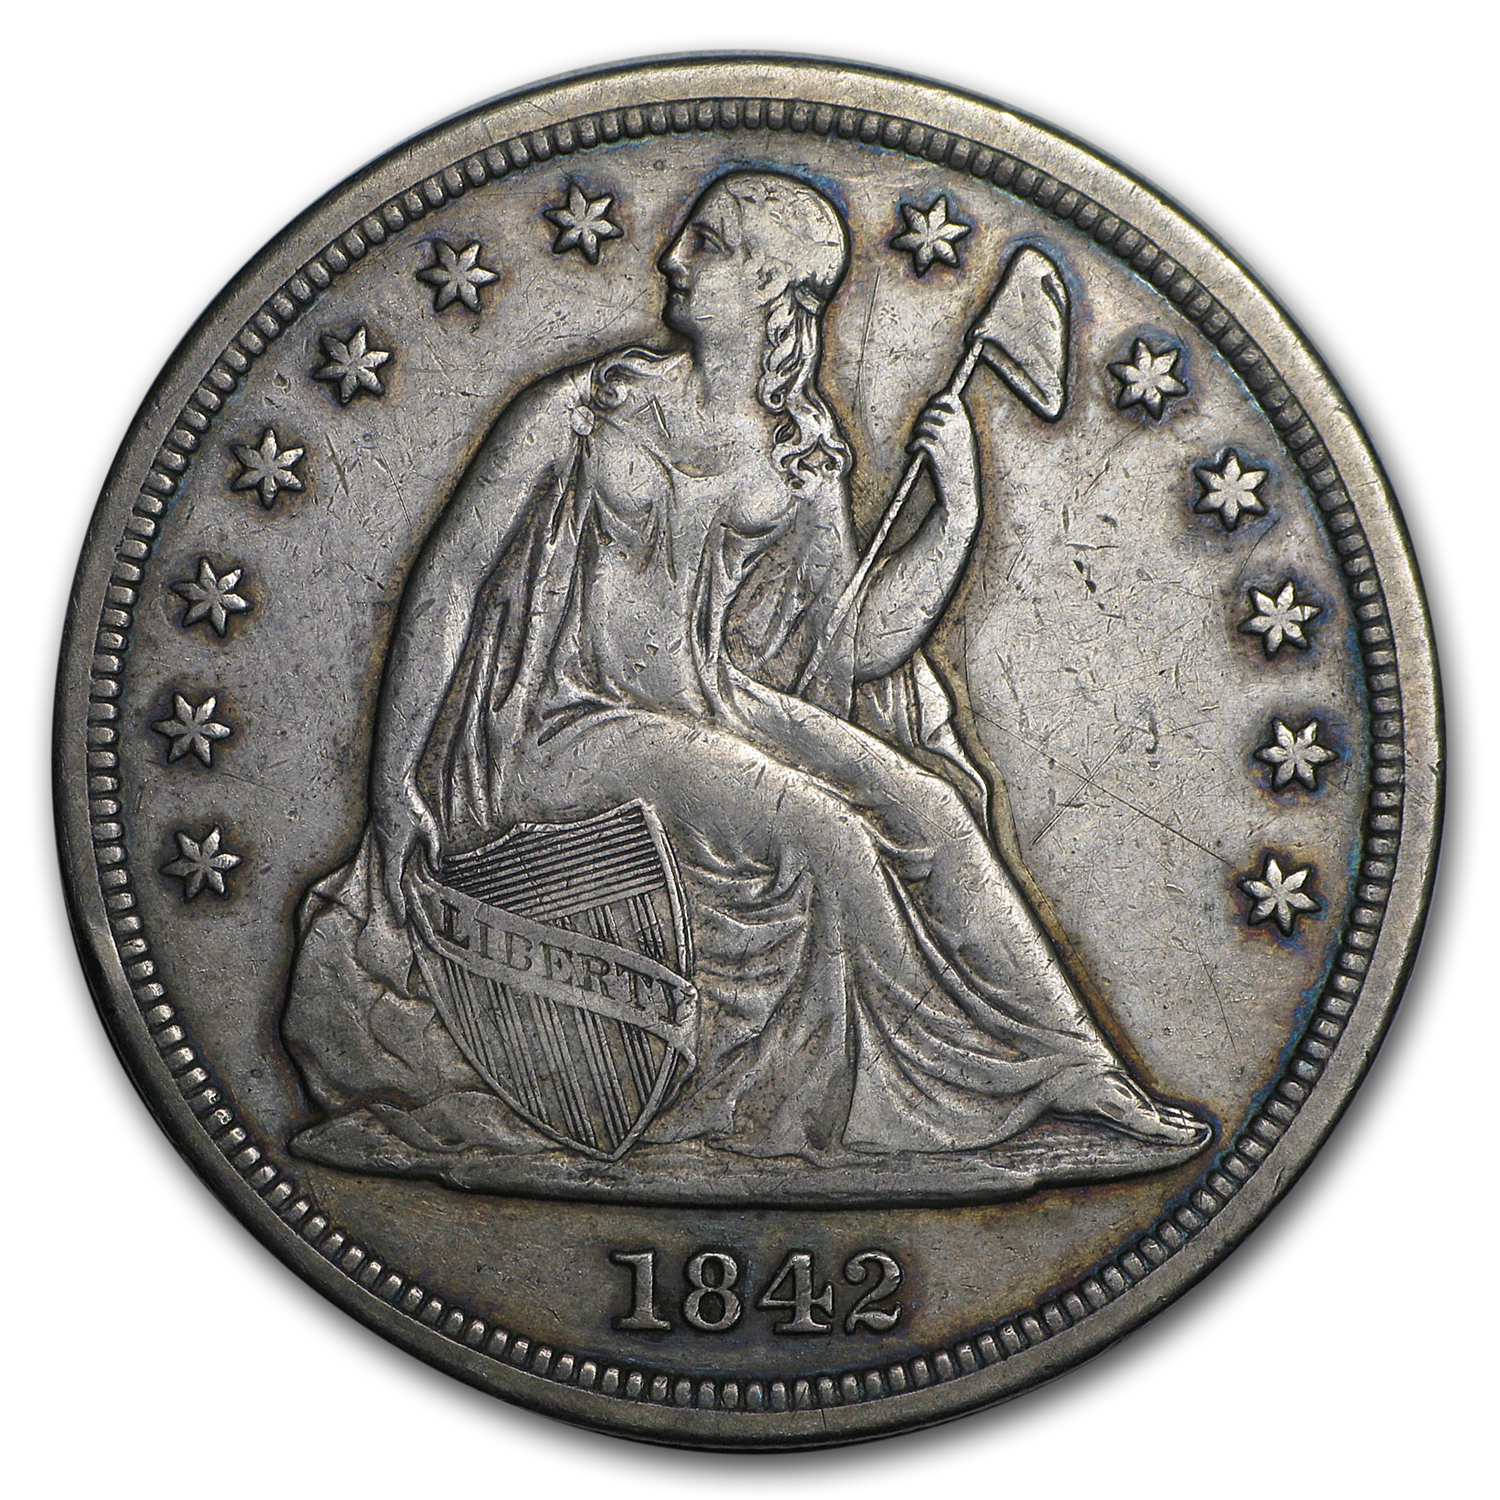 1842 Liberty Seated Dollar - Extra Fine